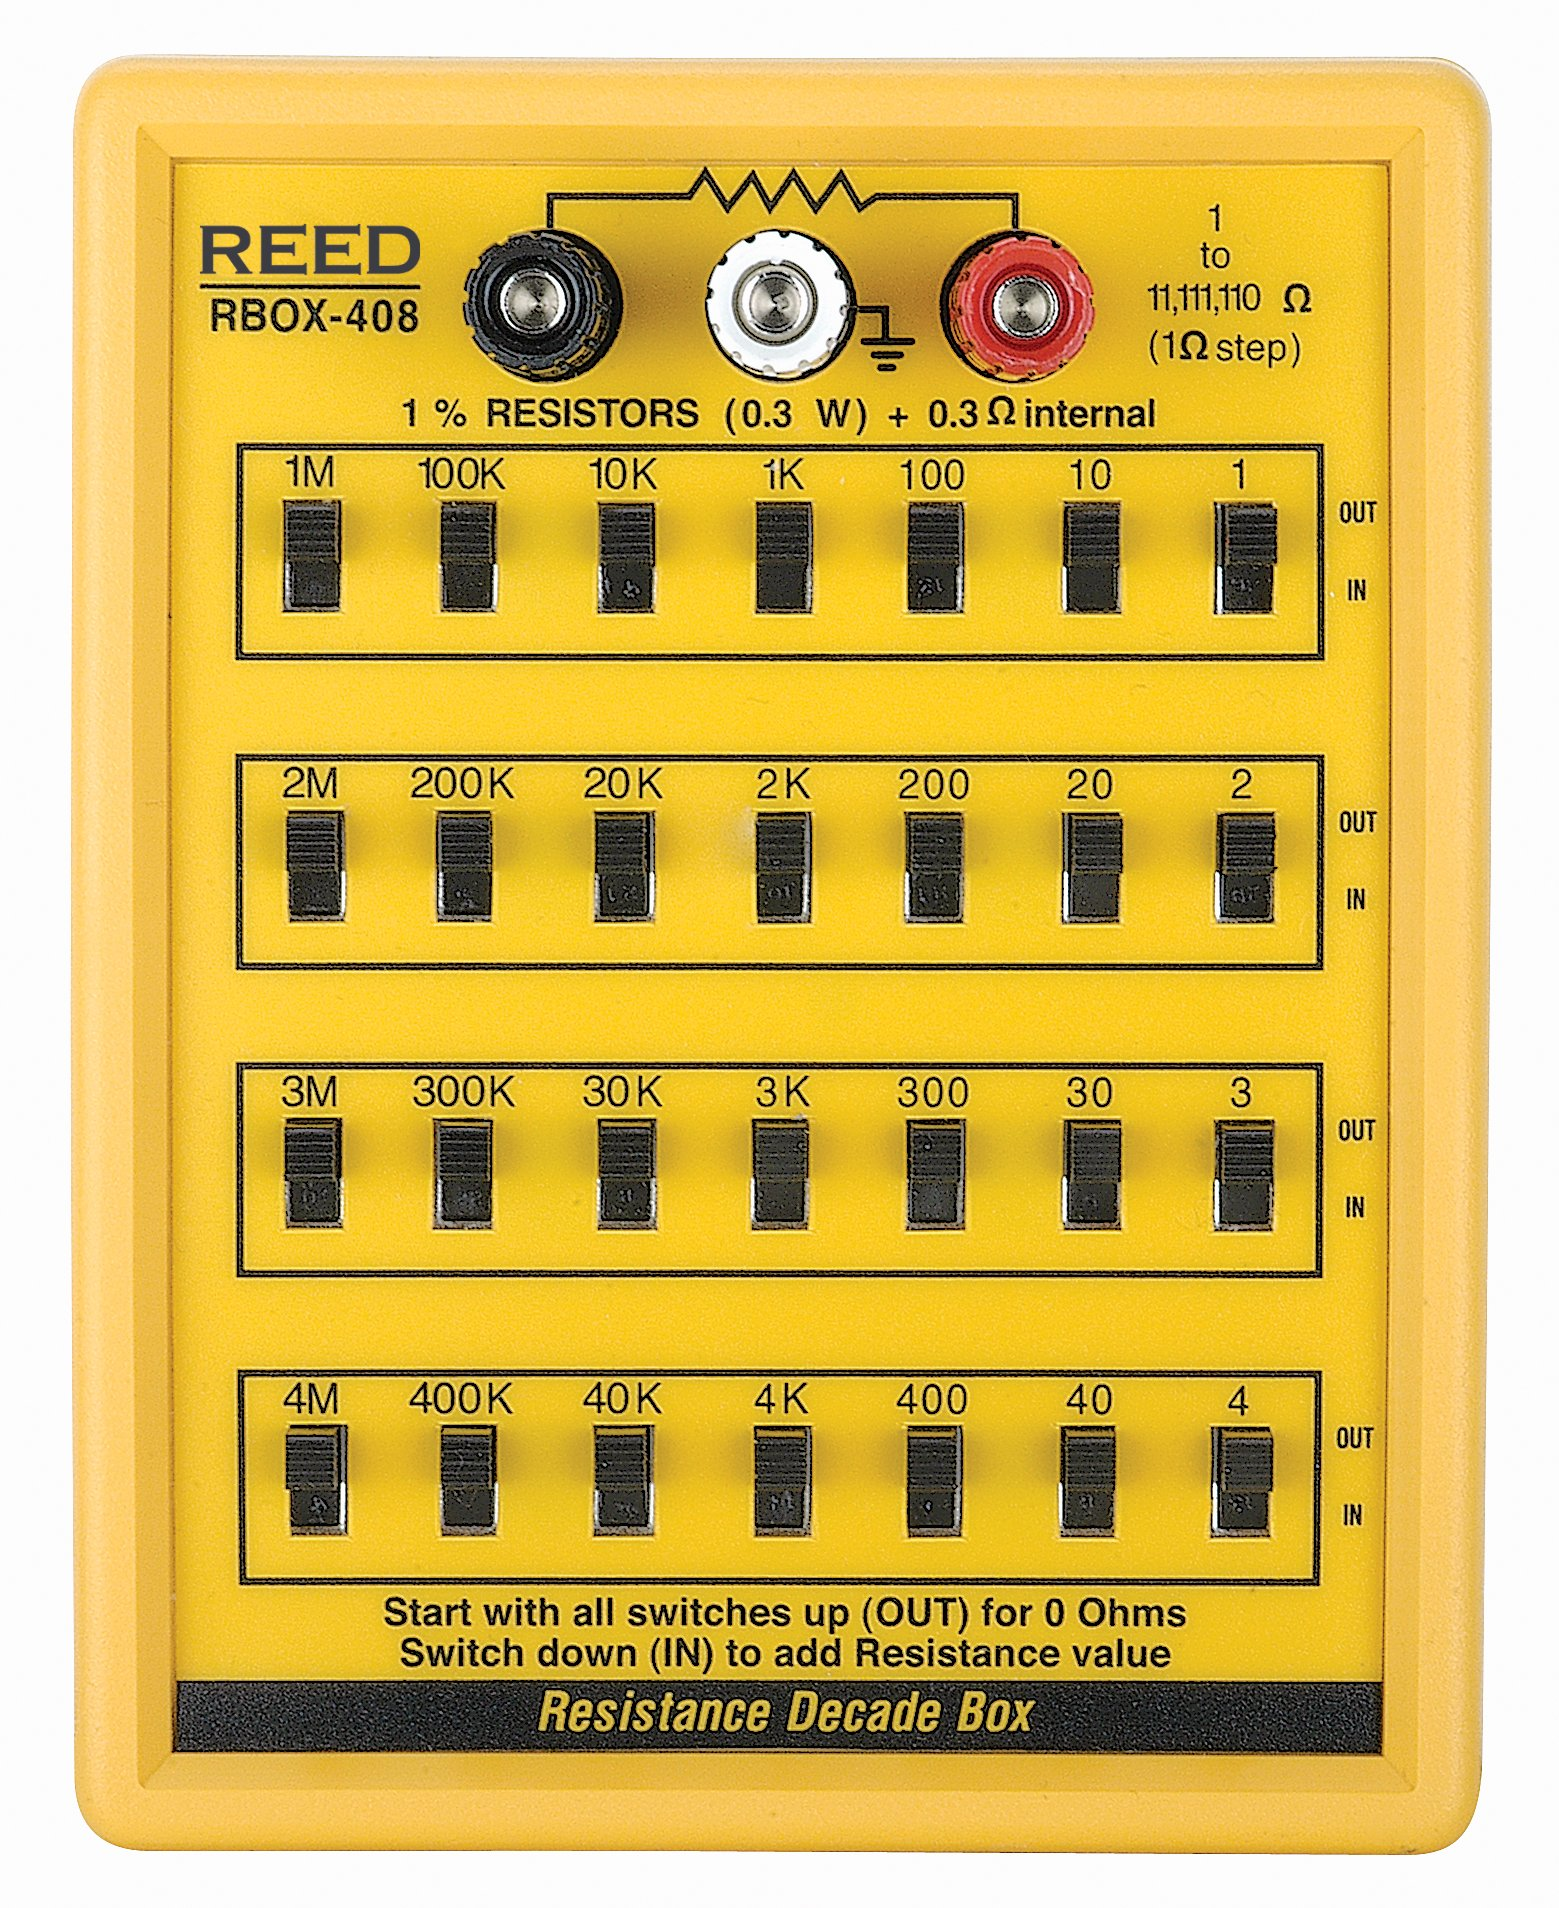 REED Instruments R5408 Resistance Decade Box by REED Instruments (Image #1)